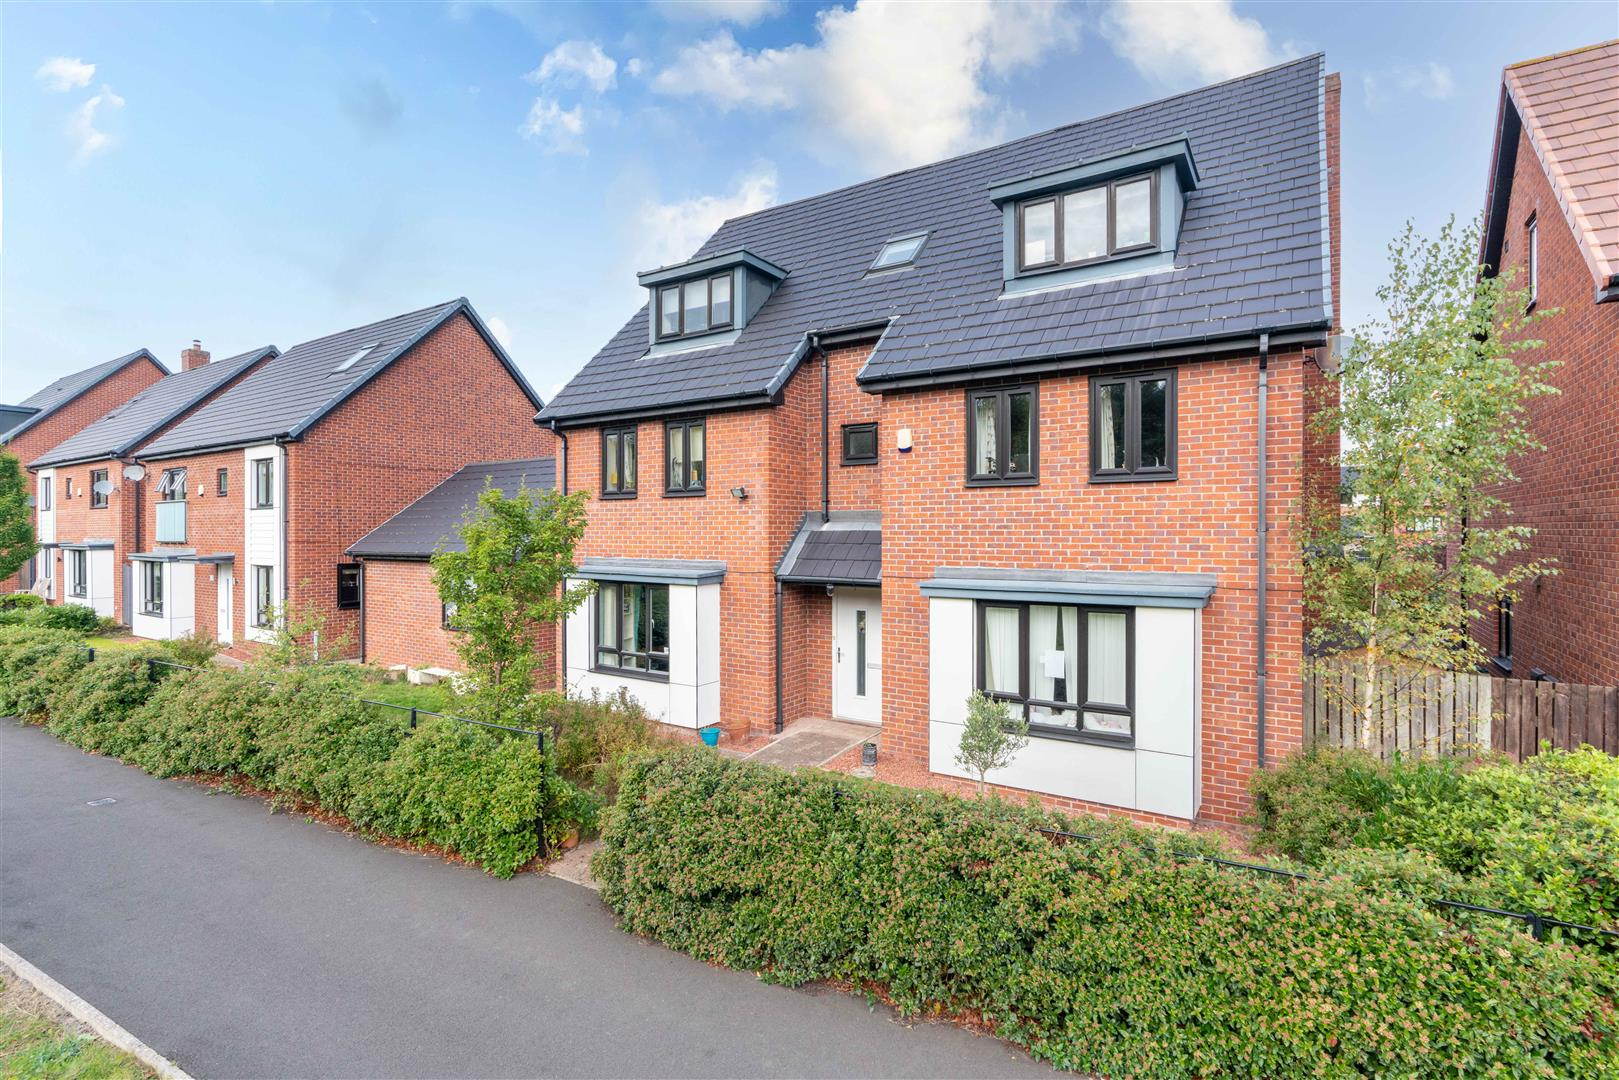 6 bed detached house for sale in Abberwick Walk, Newcastle Upon Tyne, NE13